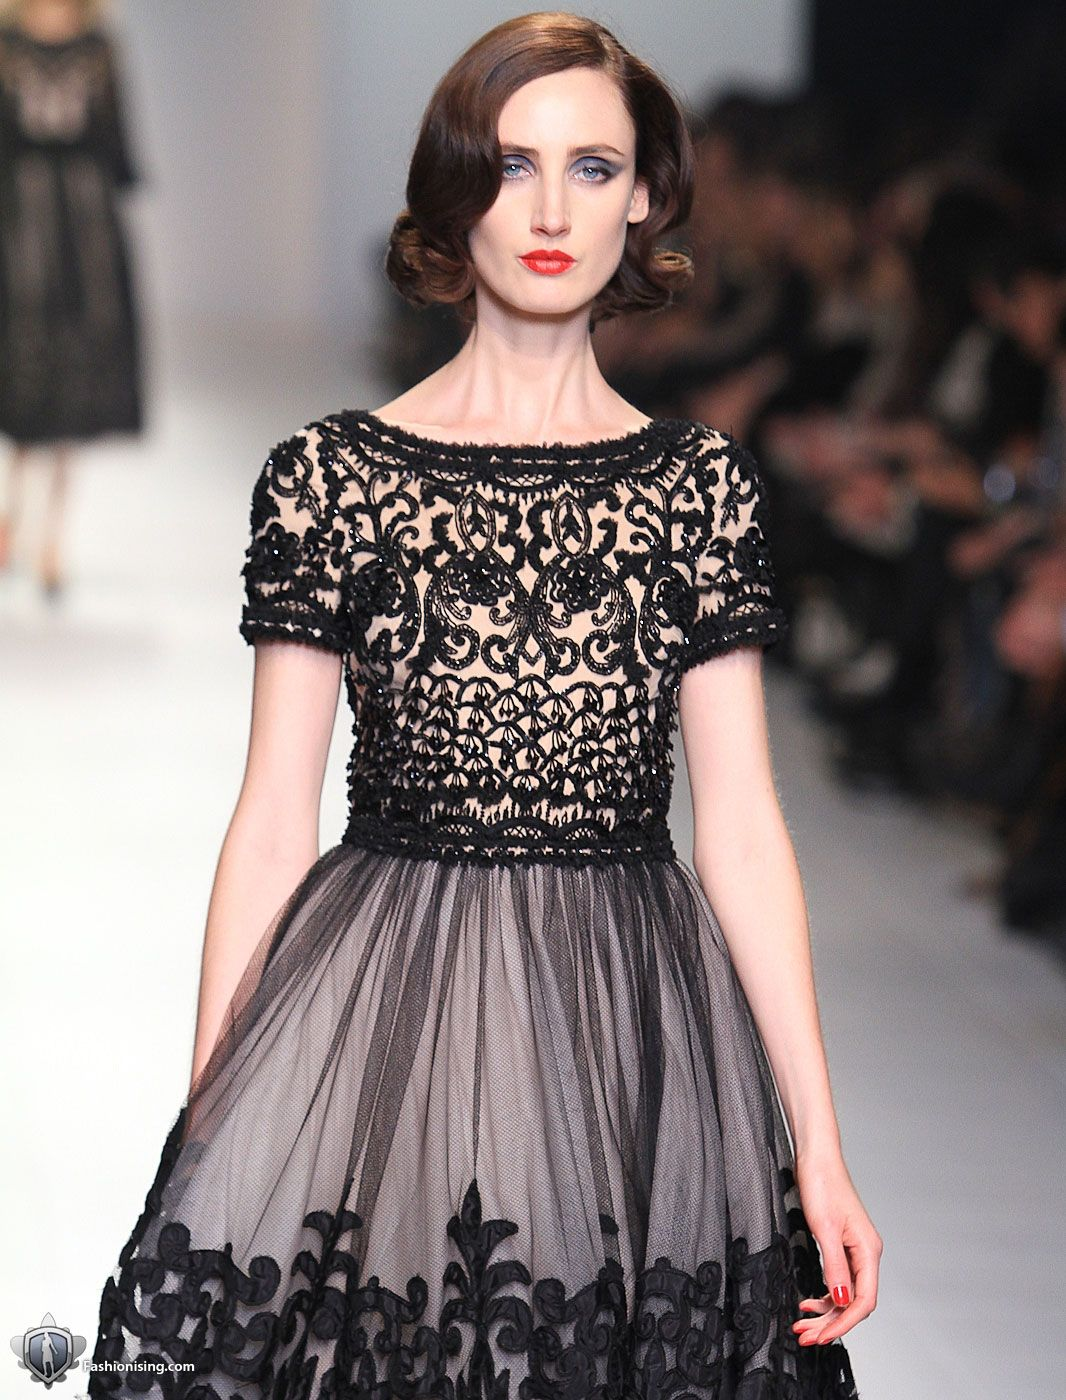 old hollywood glamor with a gothic twist